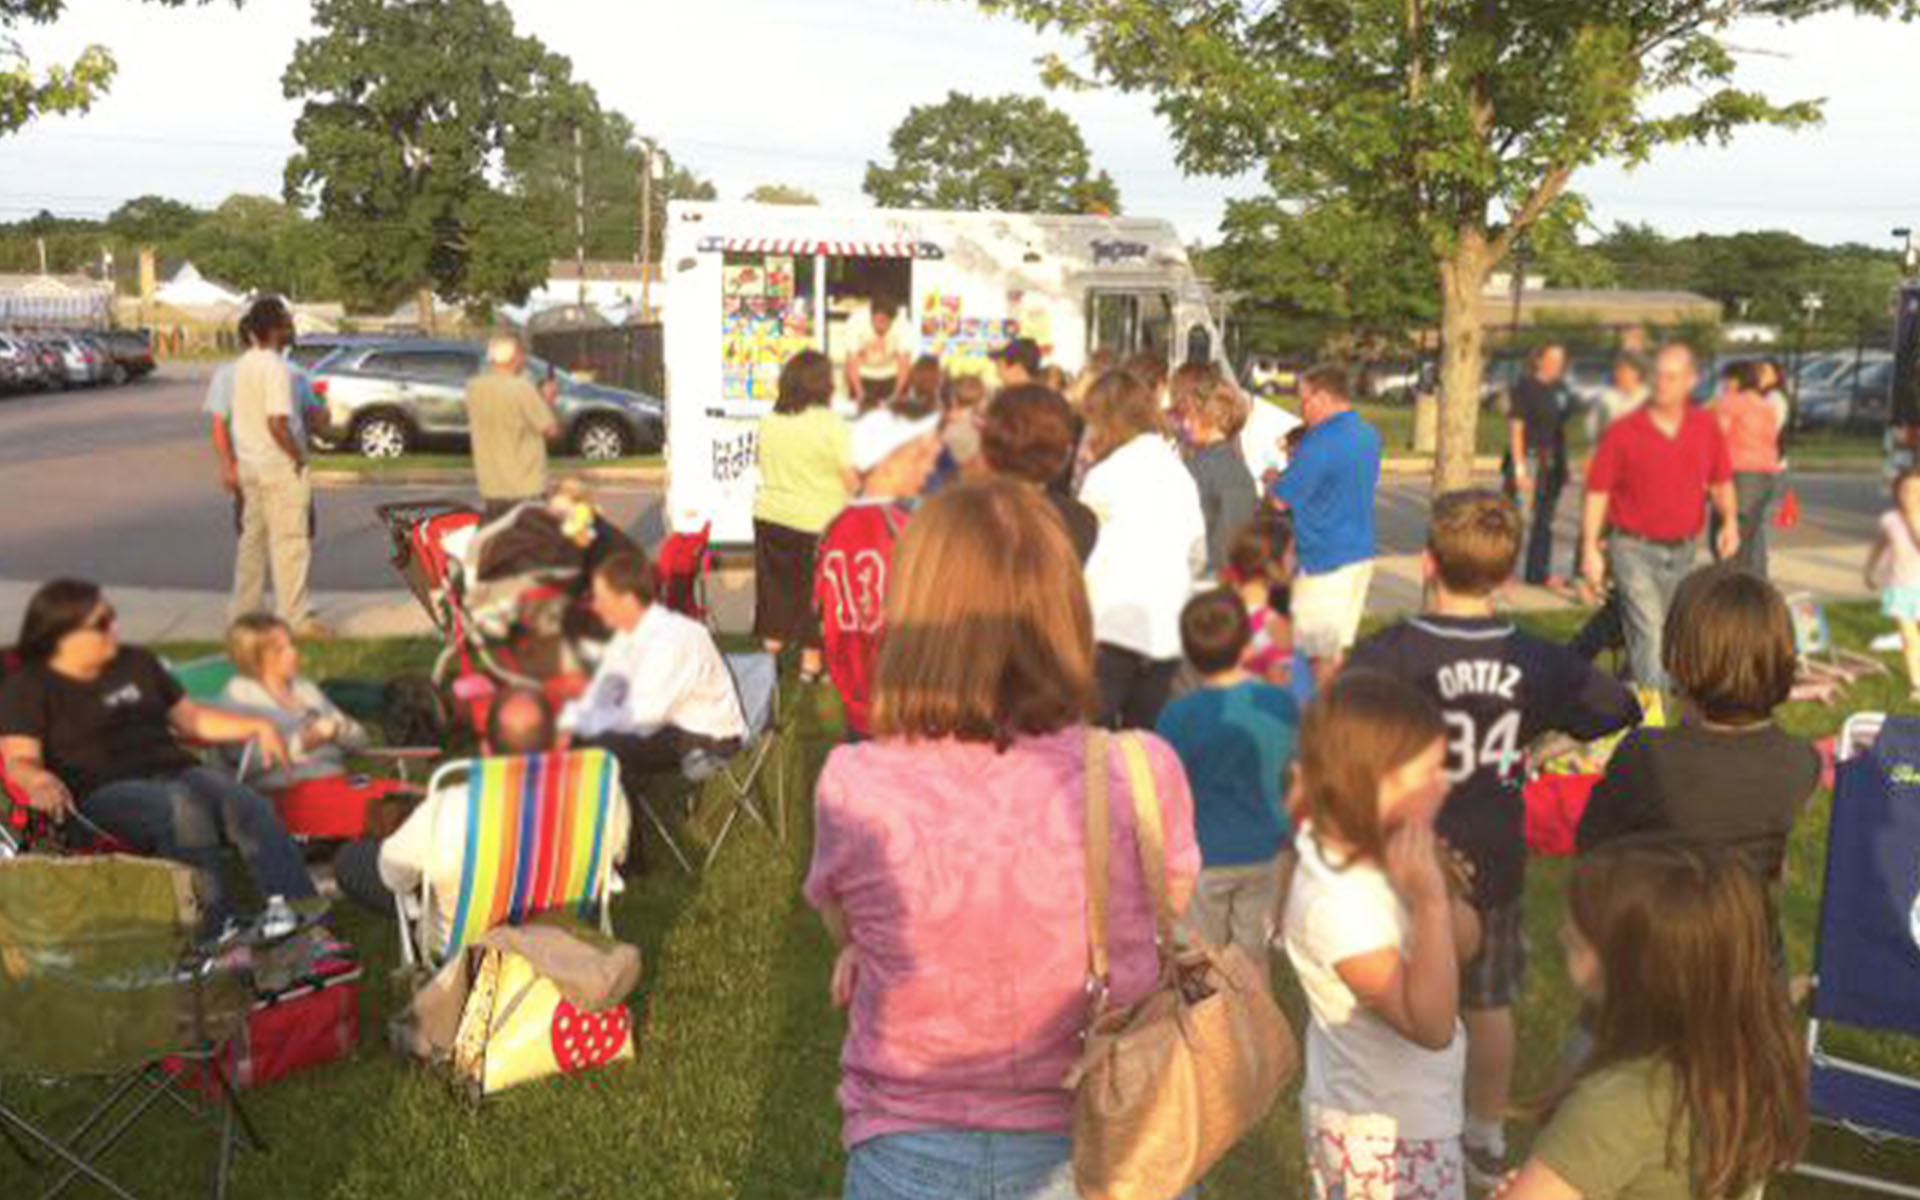 Ice cream for fun truck - New York summer - events - Photo gallery 6